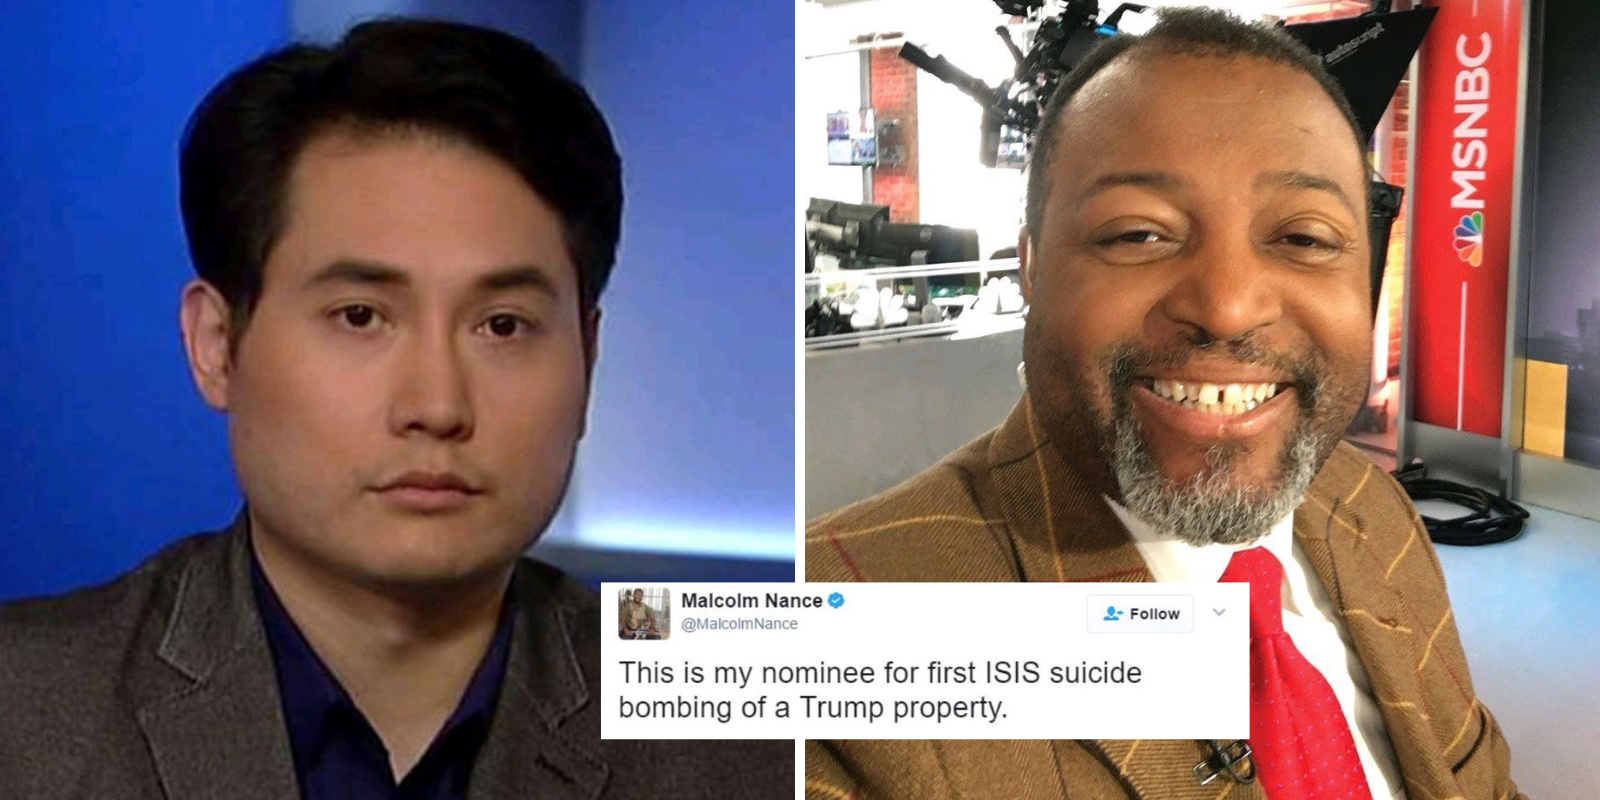 WATCH: Expert terrorism witness invited by House Democrats once called for suicide bombing of Trump Tower